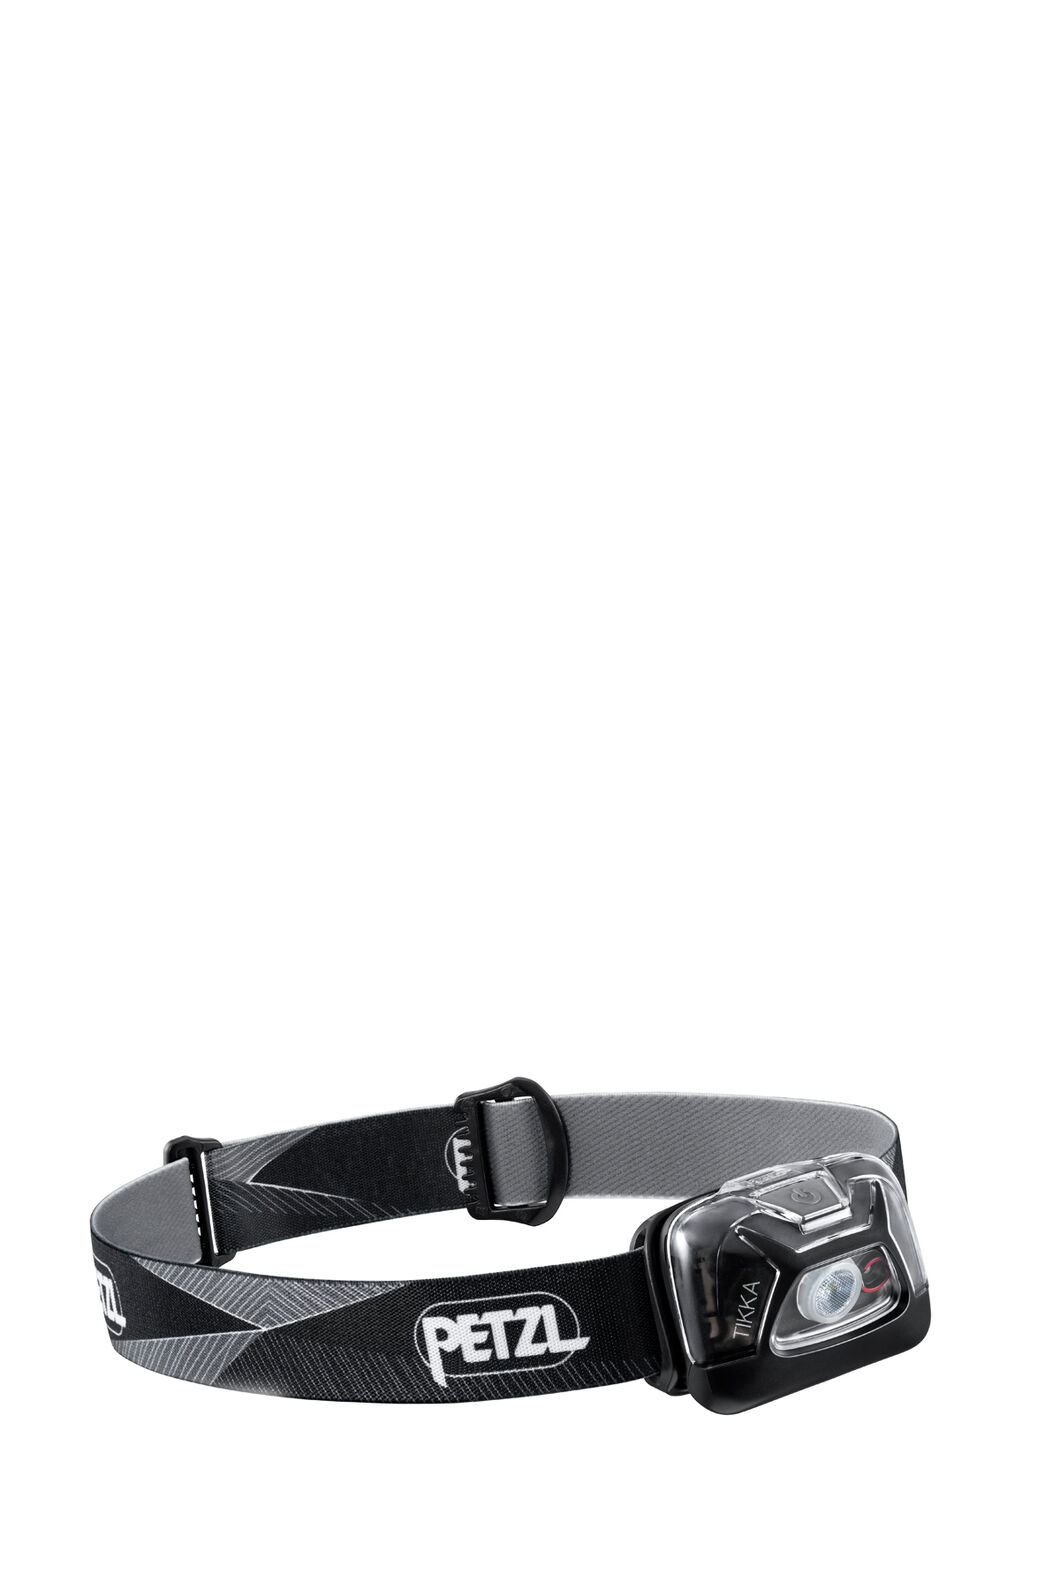 Petzl Tikka Head Torch, Black, hi-res